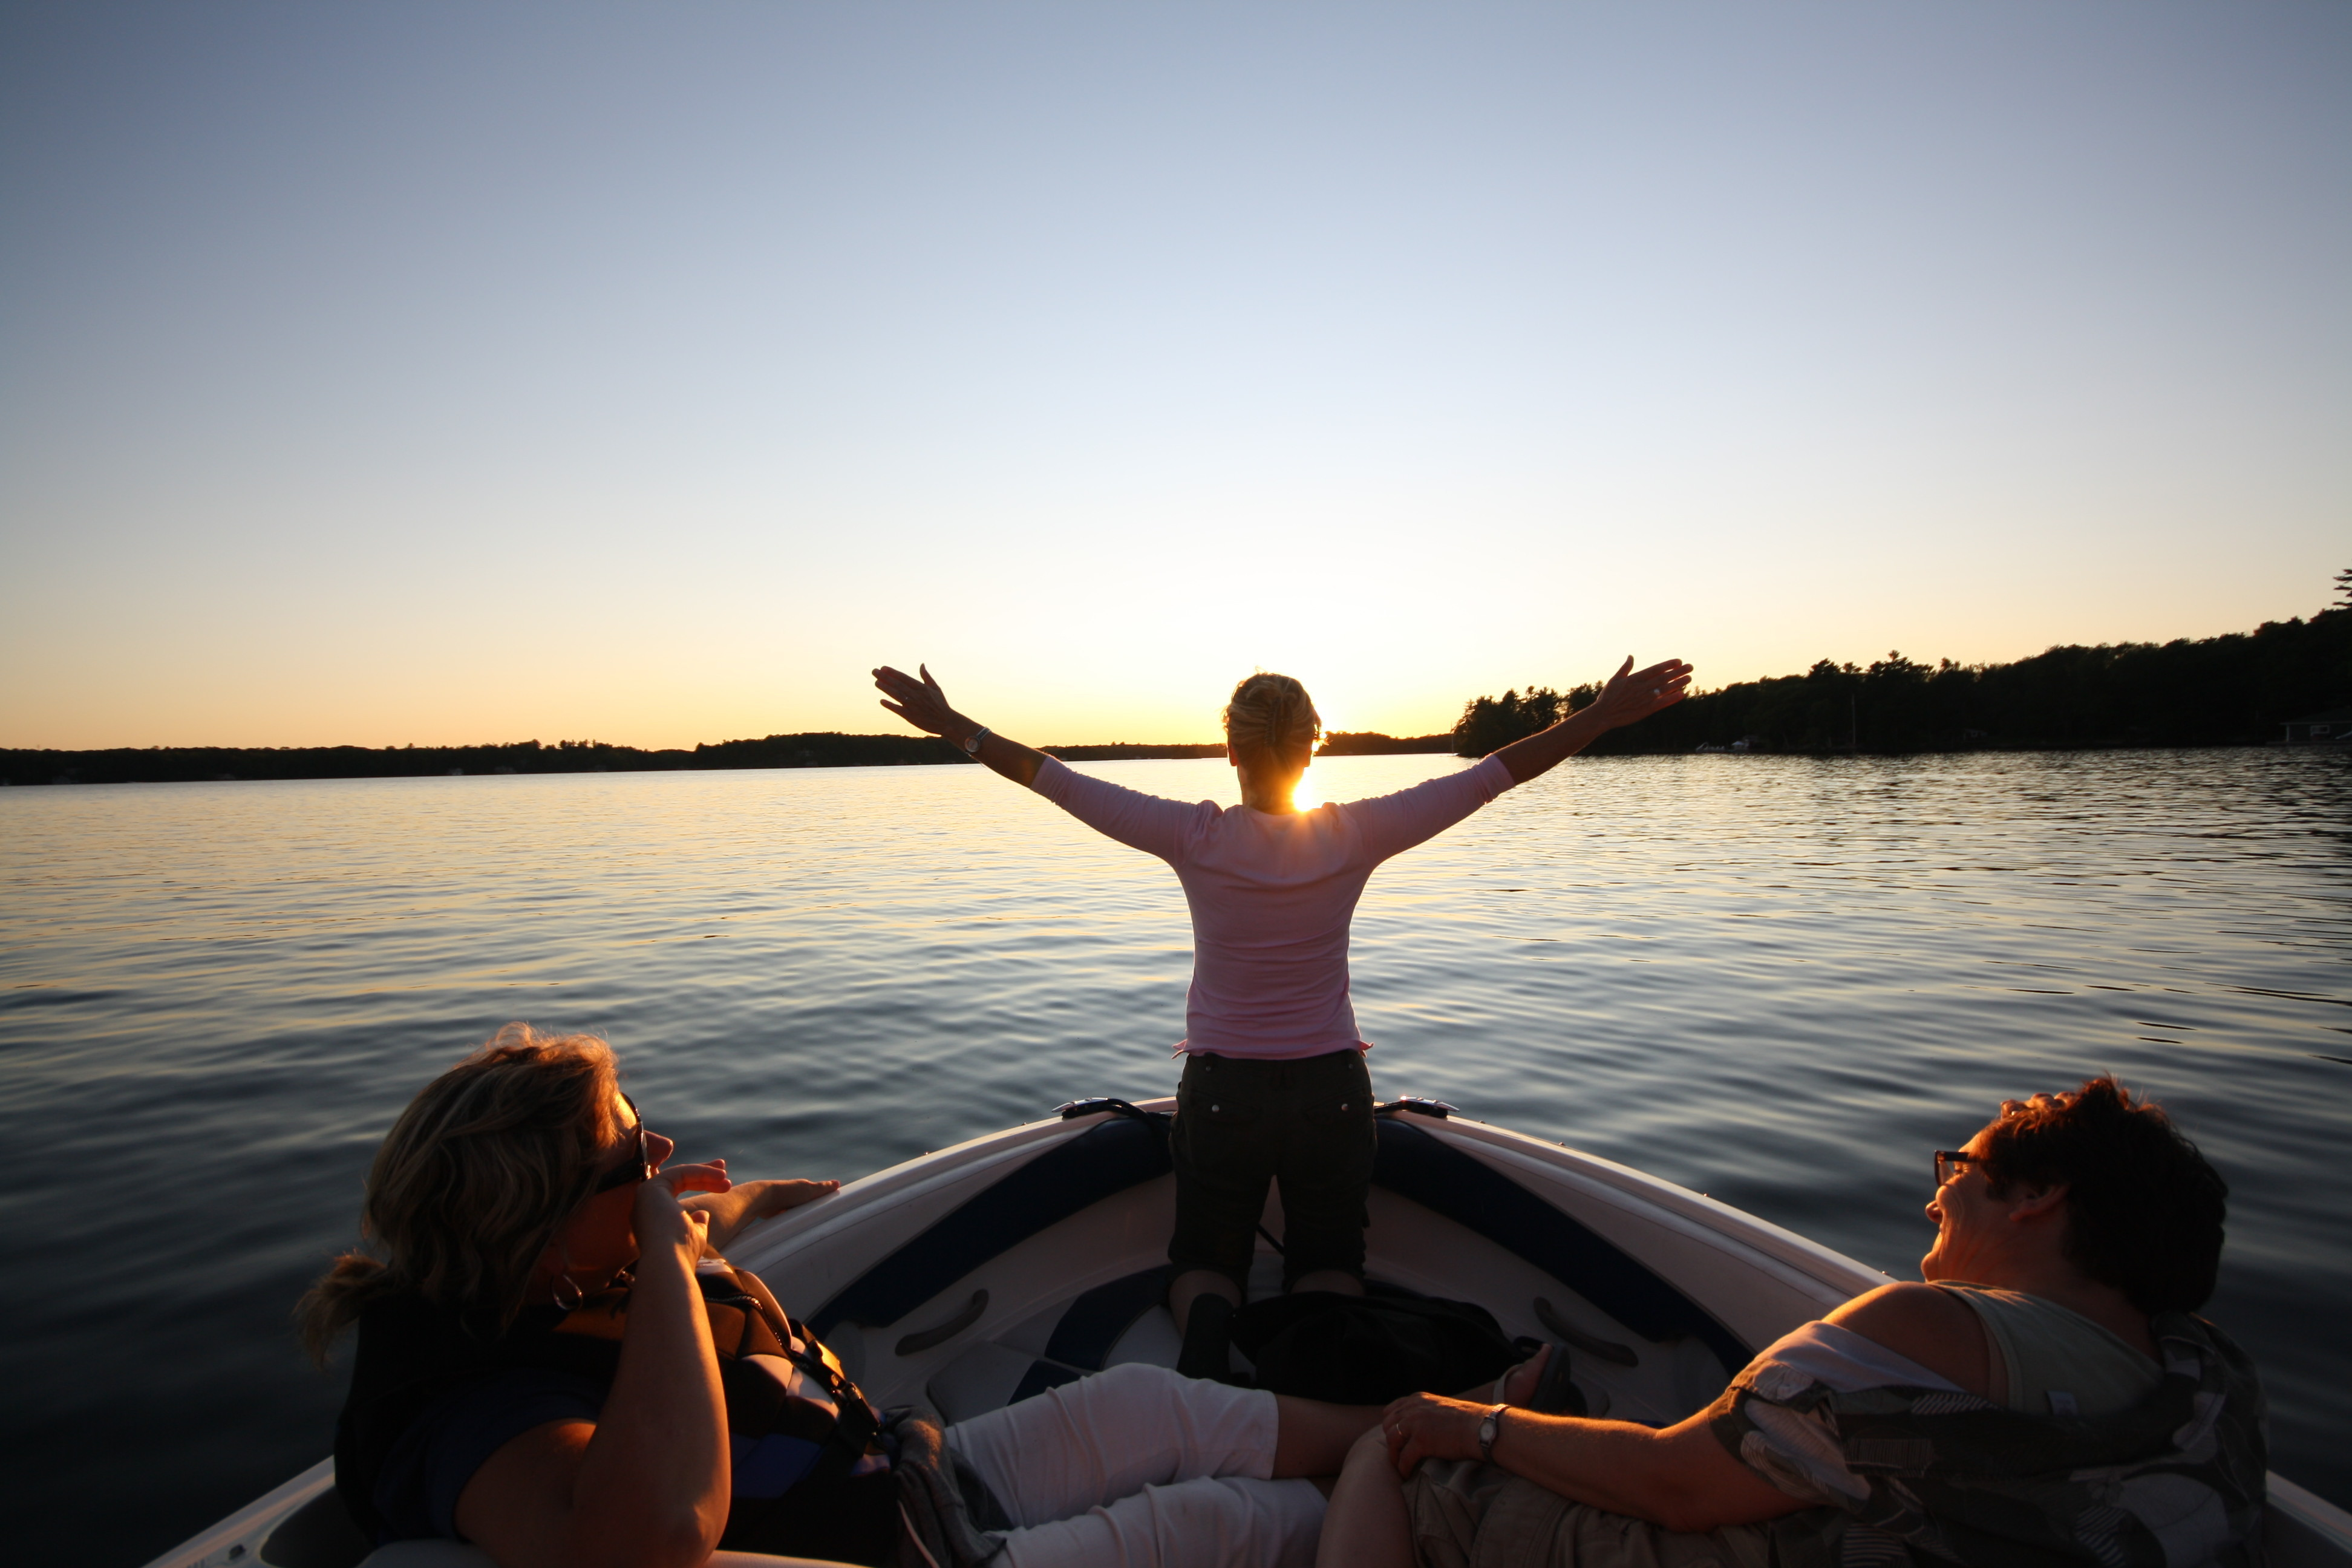 Celebrate a perfect day in Muskoka with a sunset boat ride. There's no finer way to spend an evening in this magical part of Ontario.